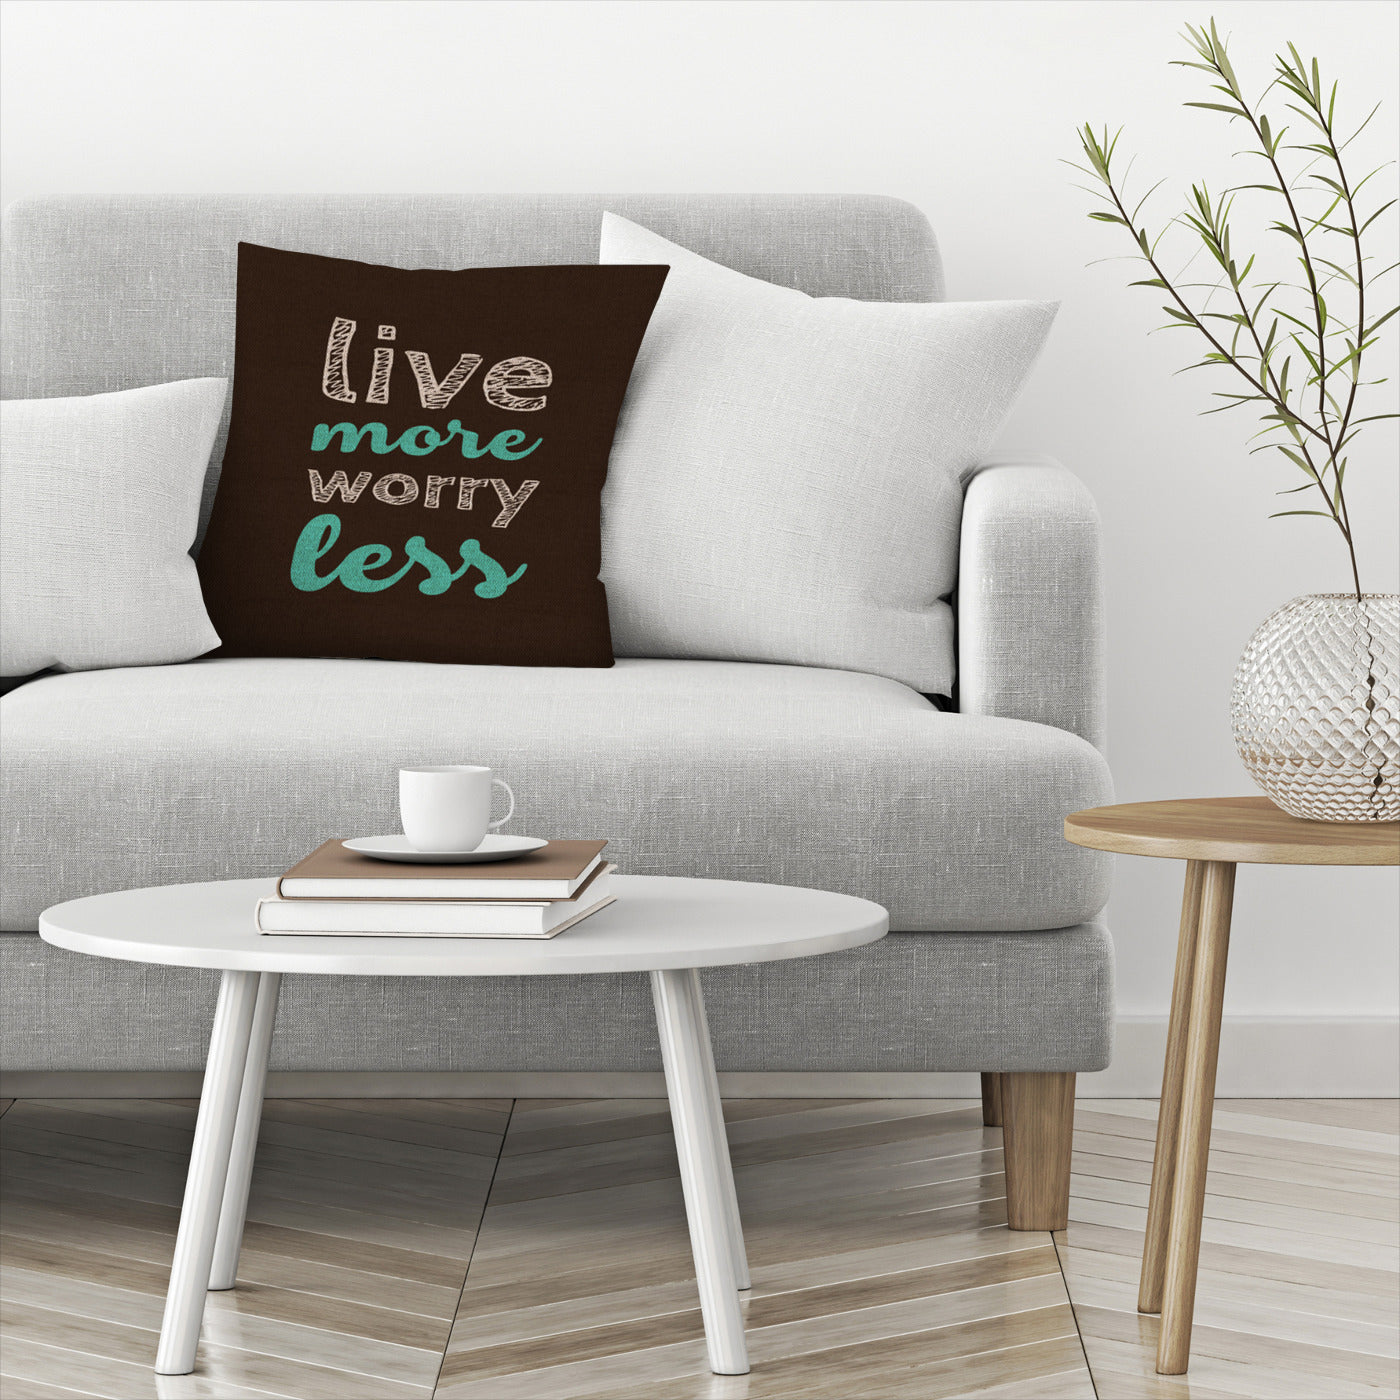 More Or Less by Susana Paz Decorative Pillow - Decorative Pillow - Americanflat